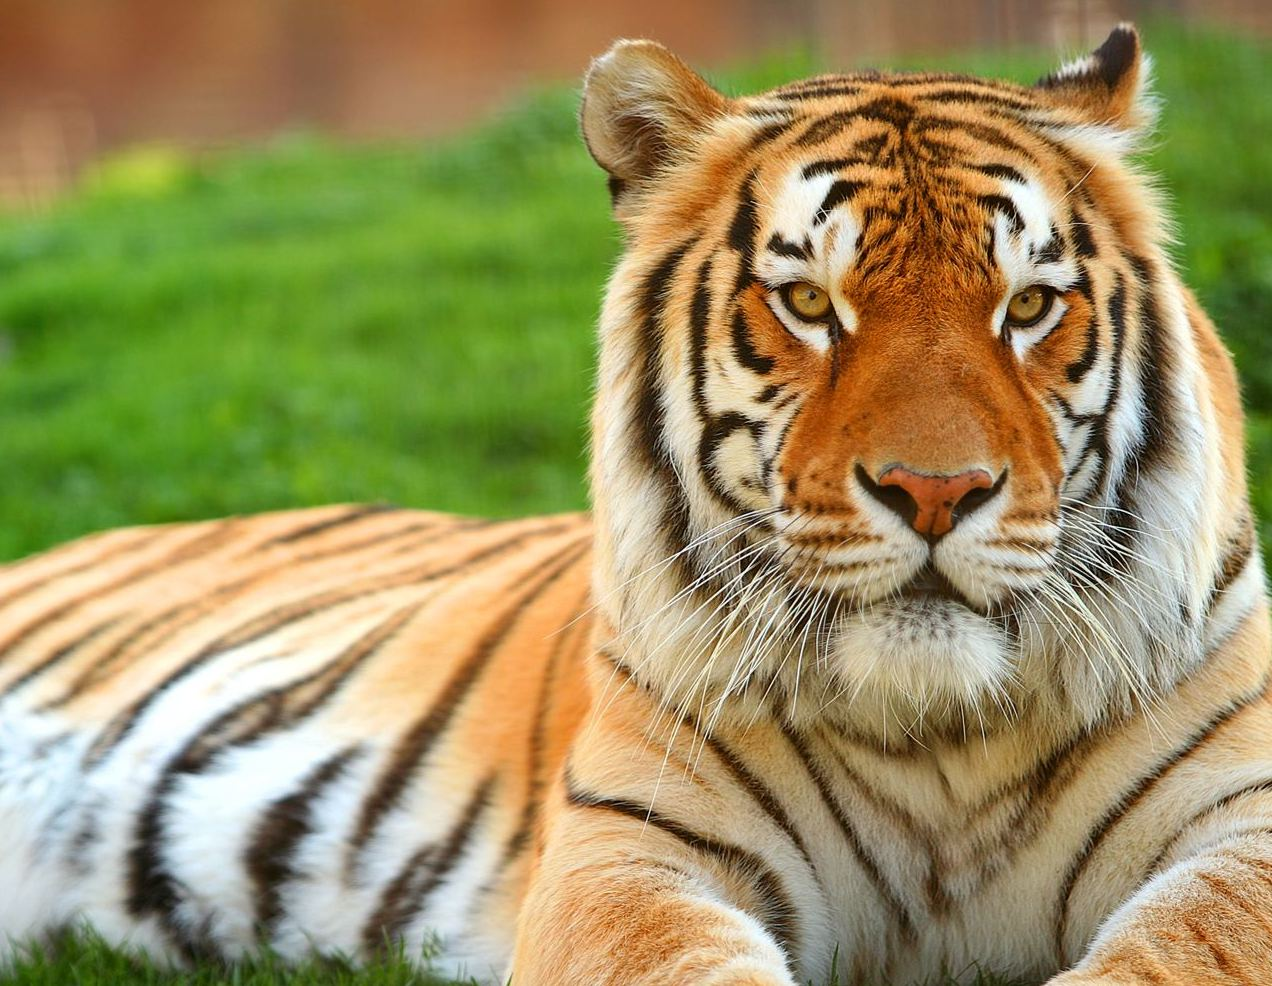 Tiger Photos Free Download